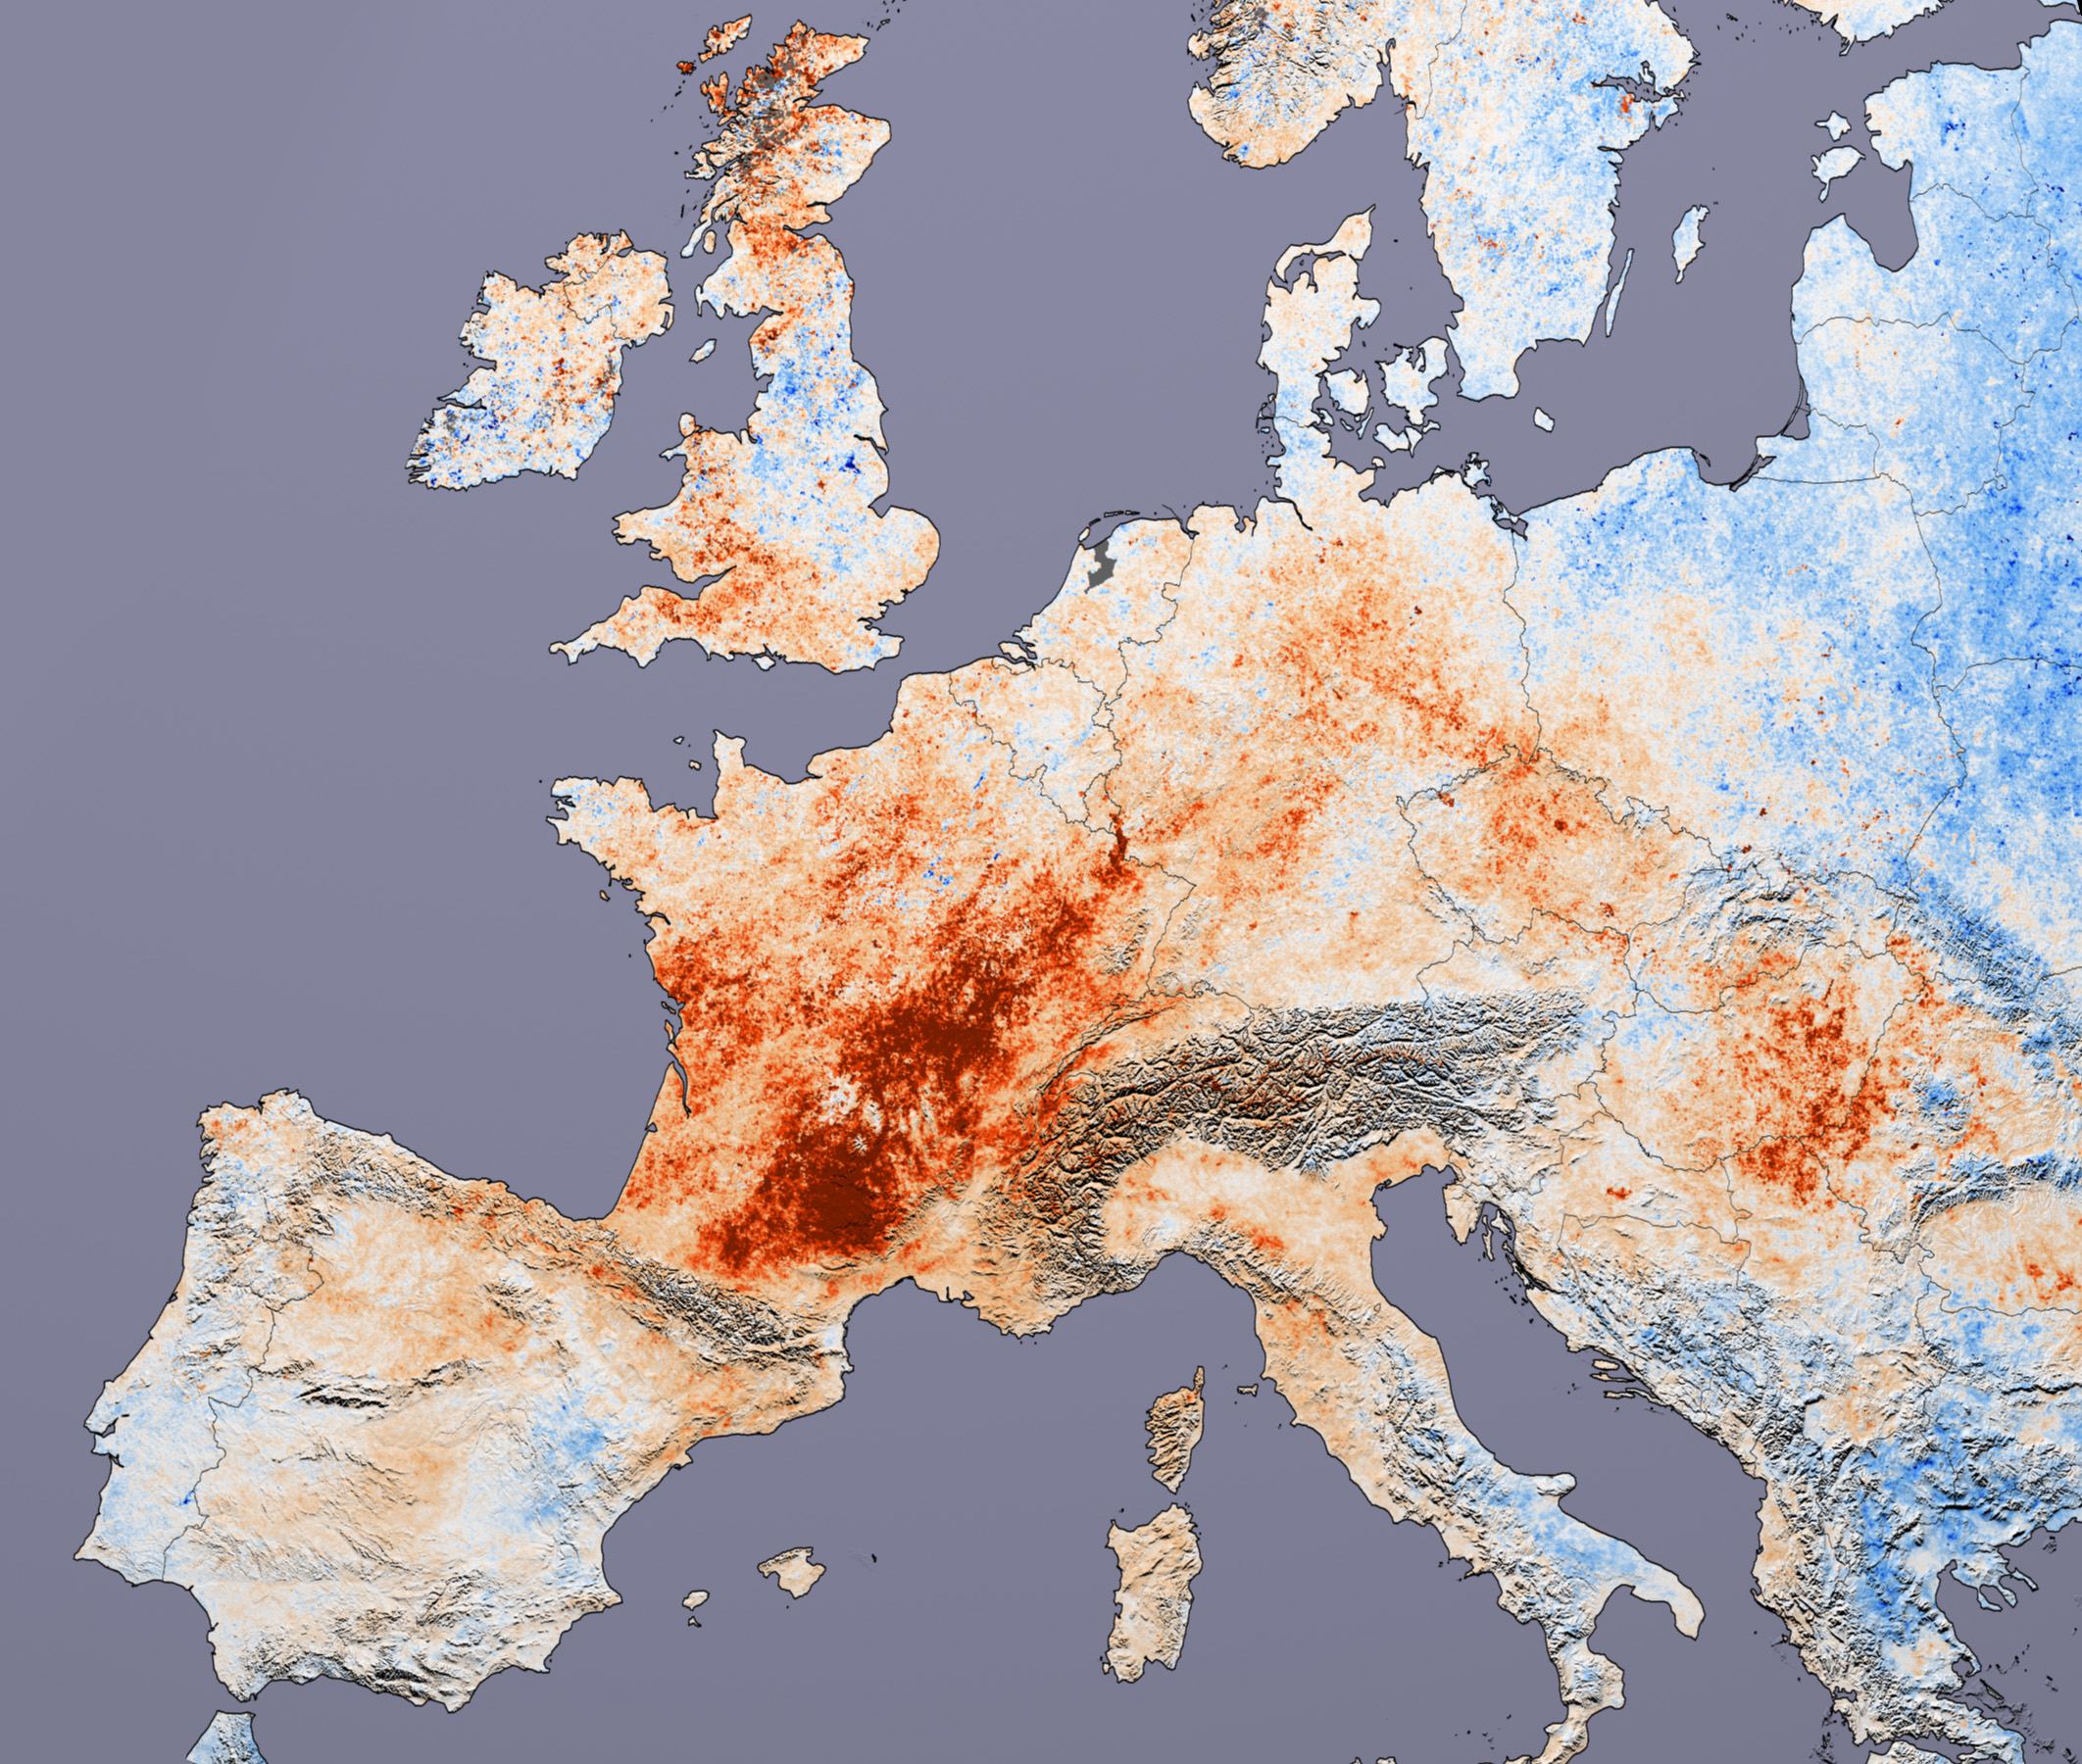 2003 European heat wave